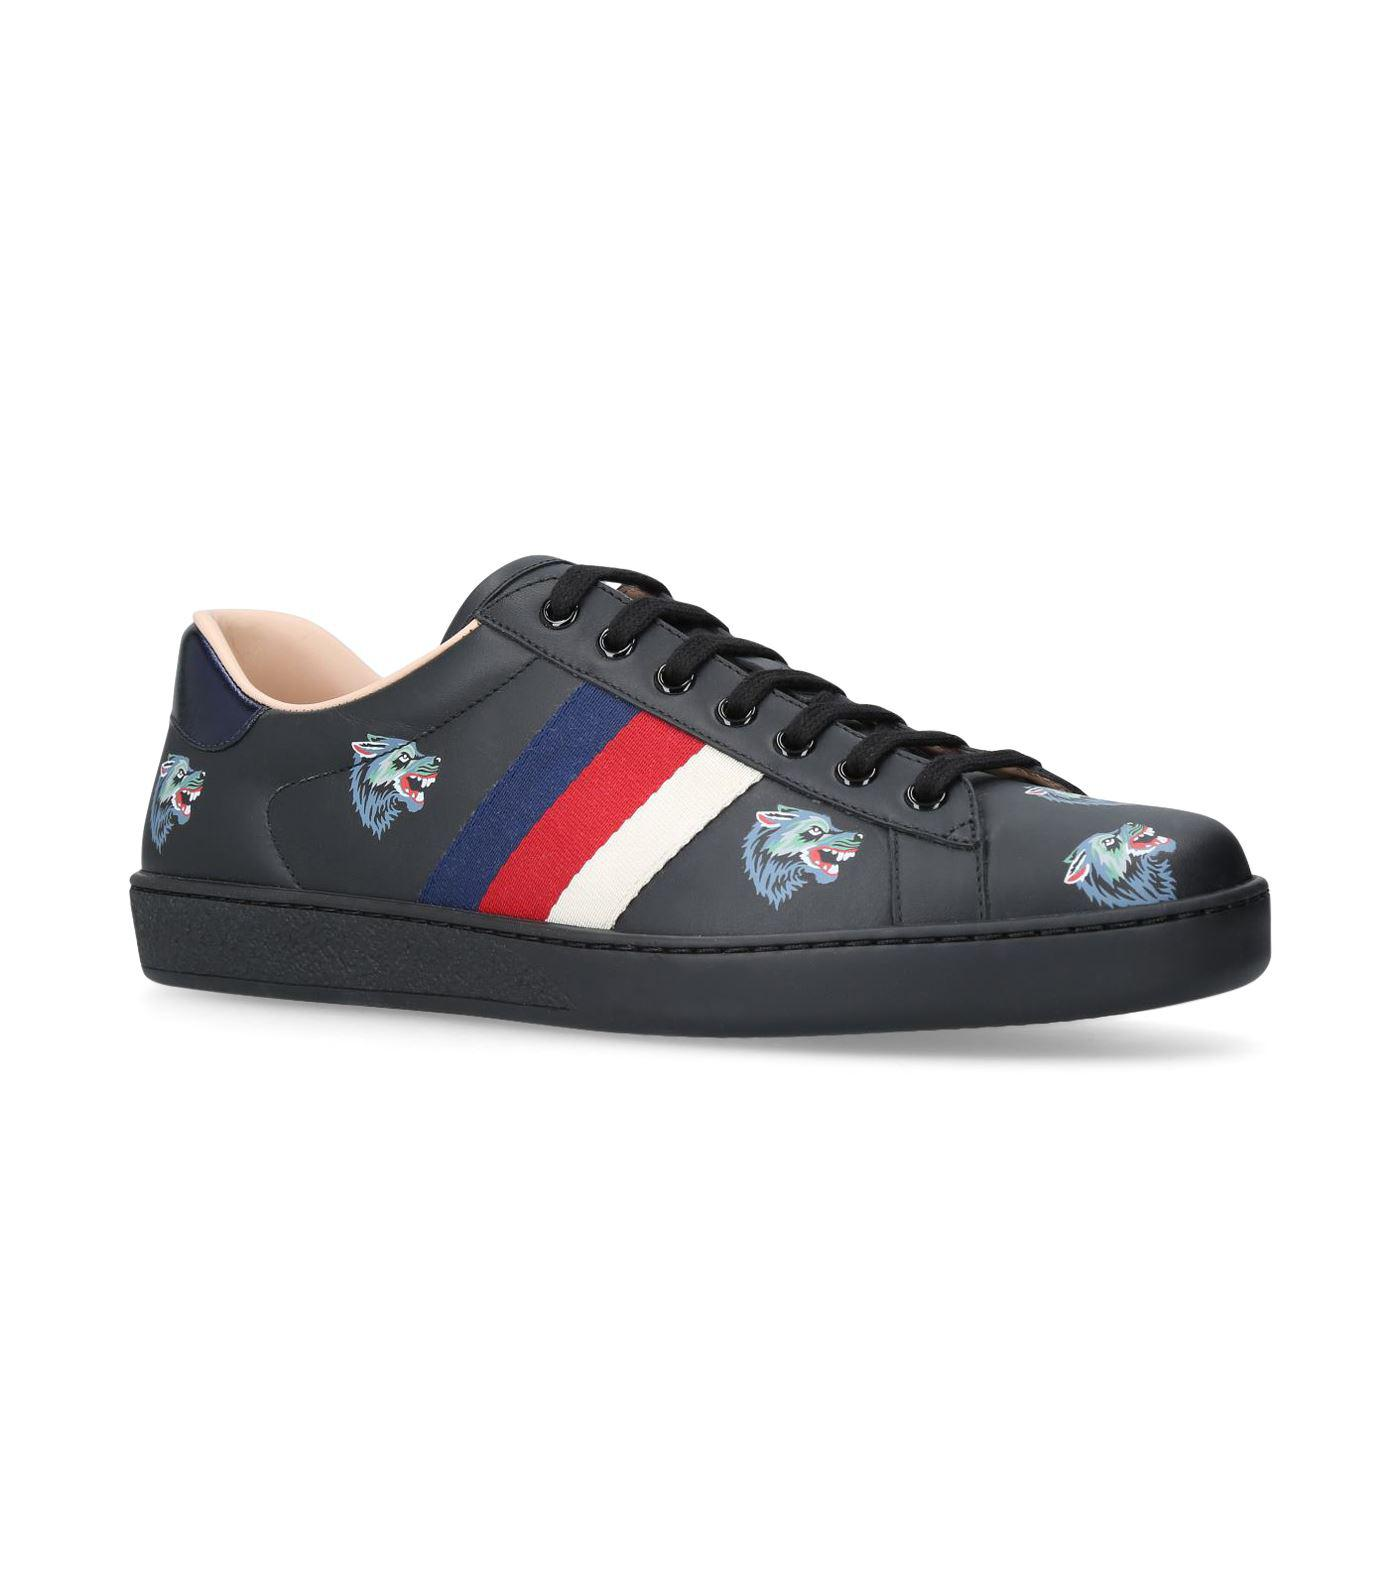 gucci wolf trainers off 59% - www